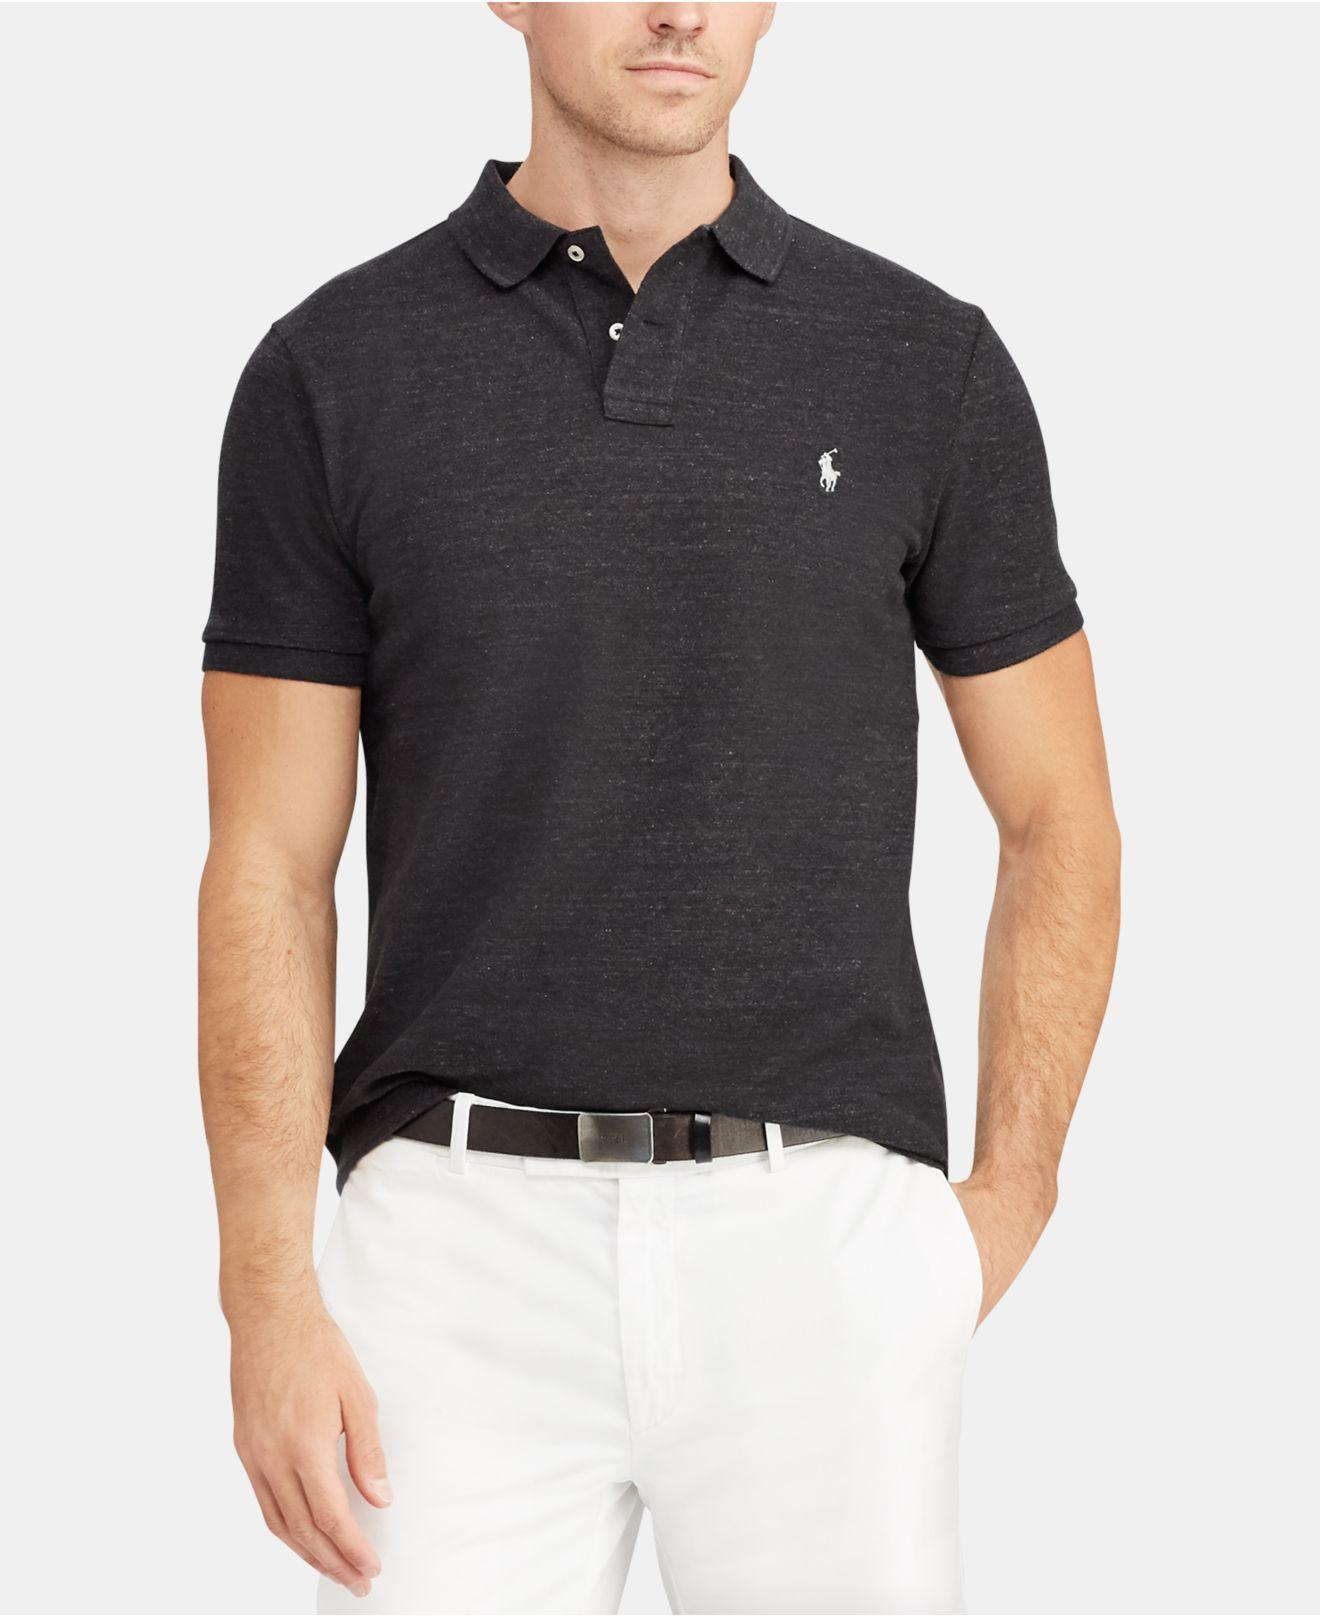 dfff89ce Lyst - Polo Ralph Lauren Classic-fit Mesh Polo in Black for Men